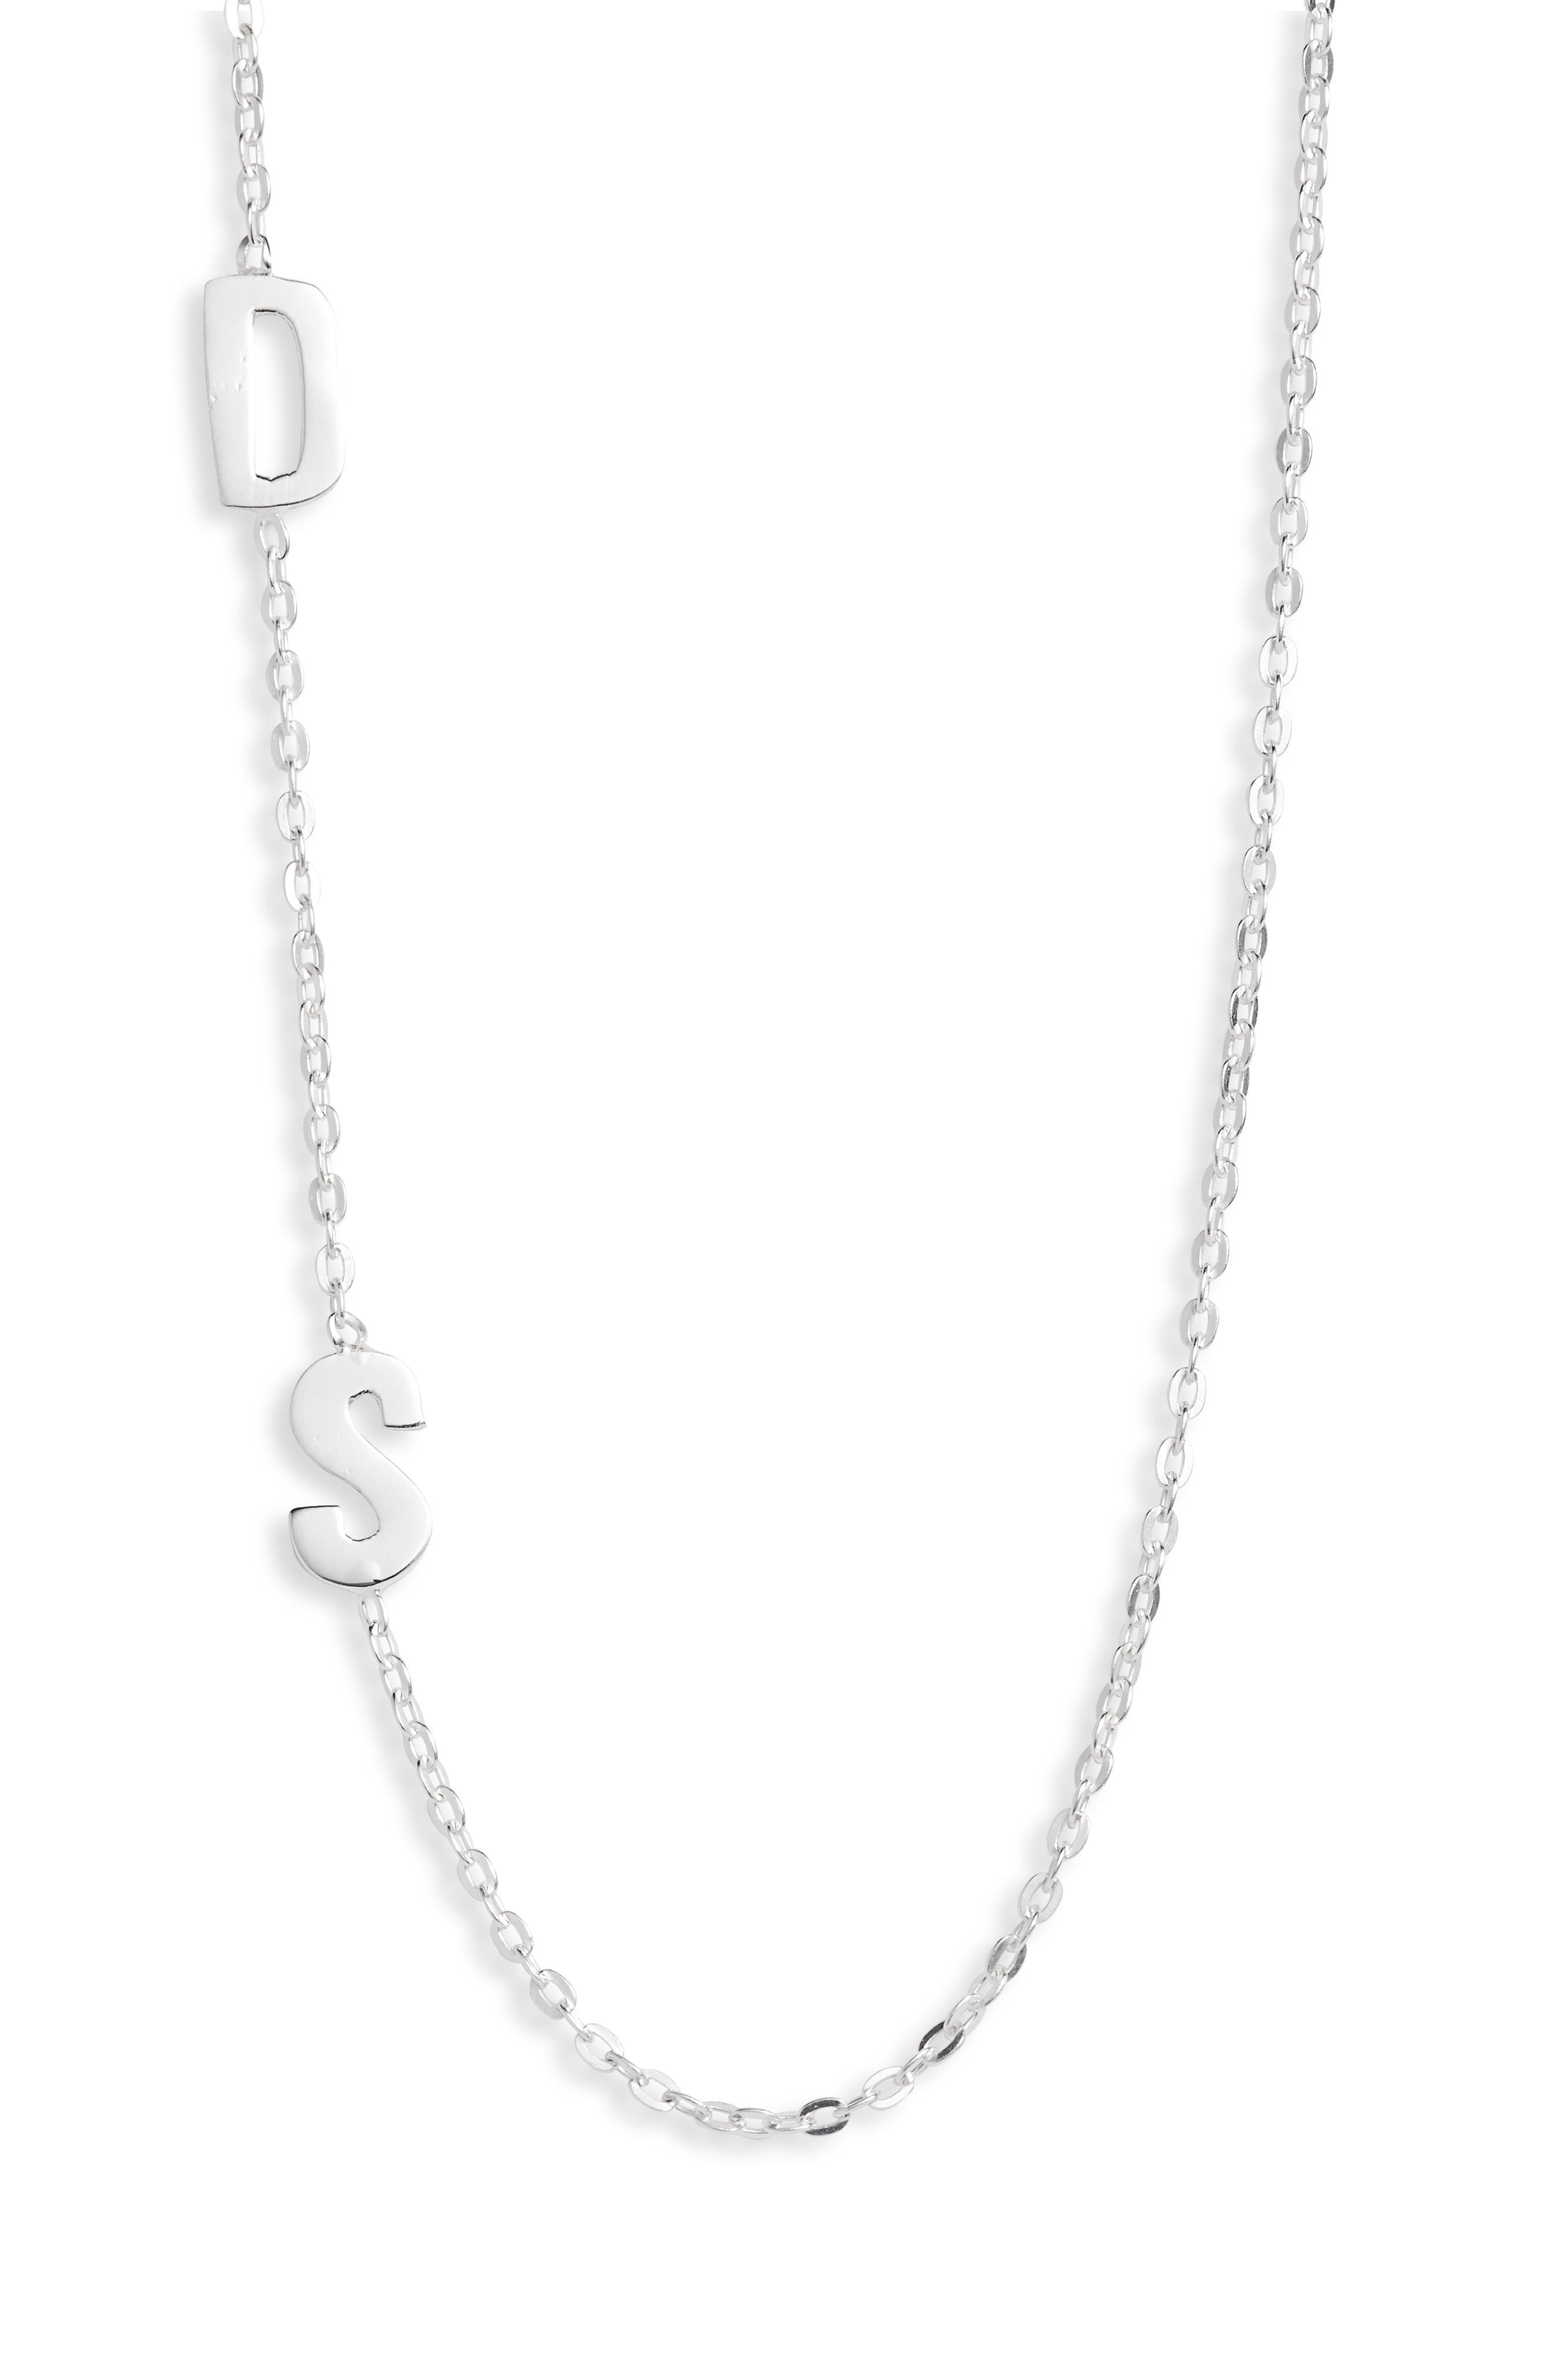 Women's Argento Vivo Personalized Two Initial Necklace